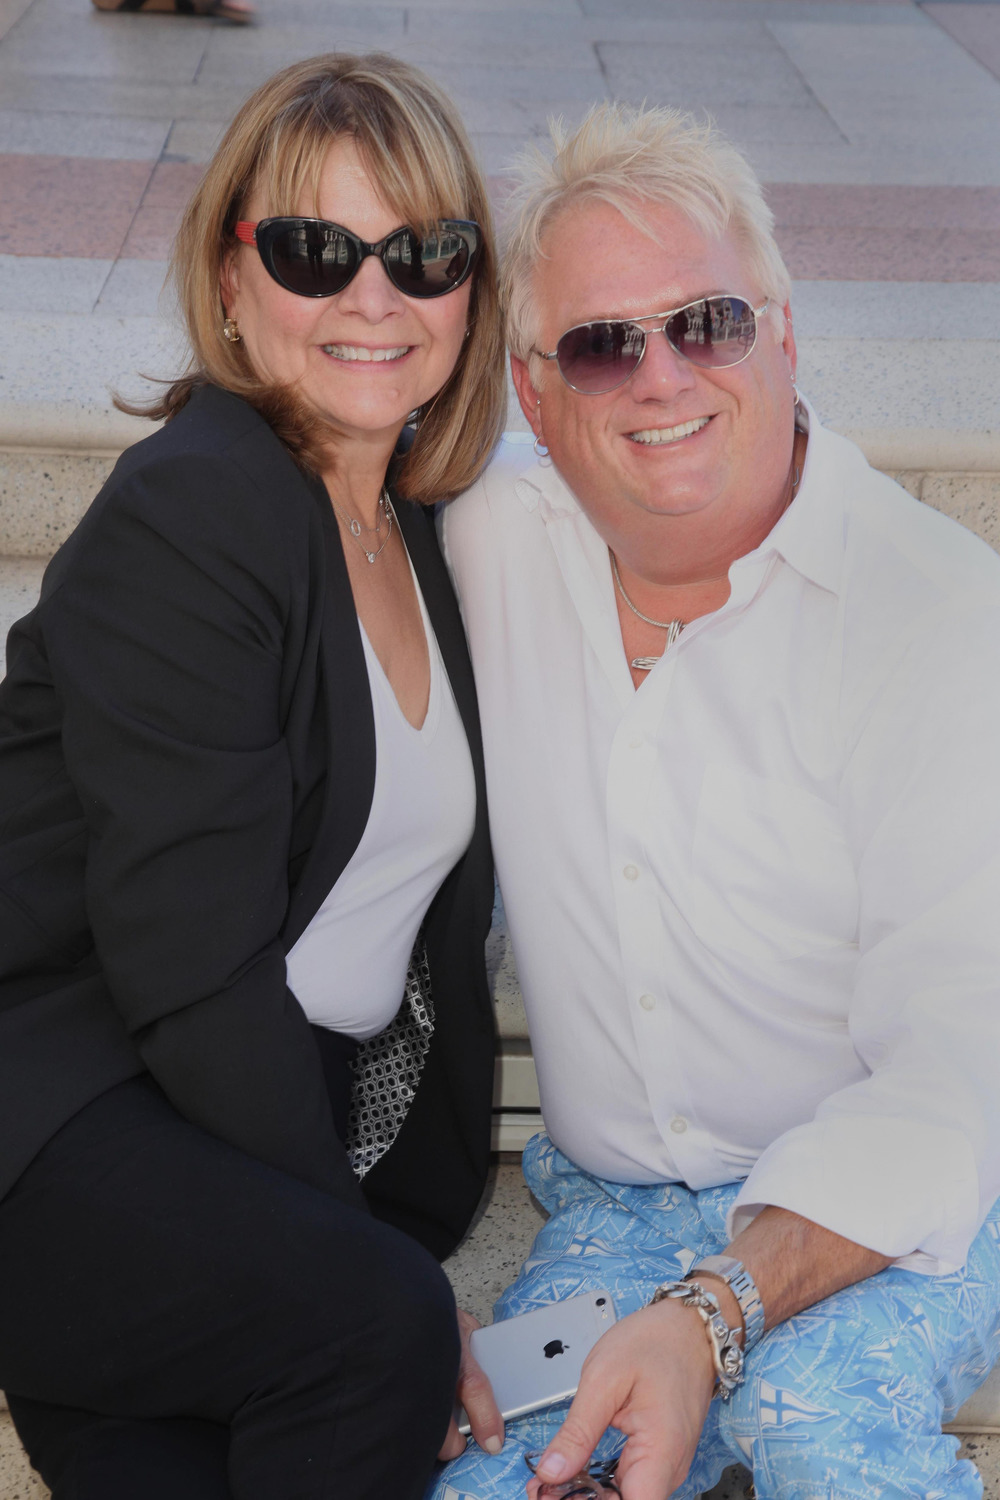 Stephen Lewis, Designer and Debbie Estapa, Brand Ambassador, Edison Optics